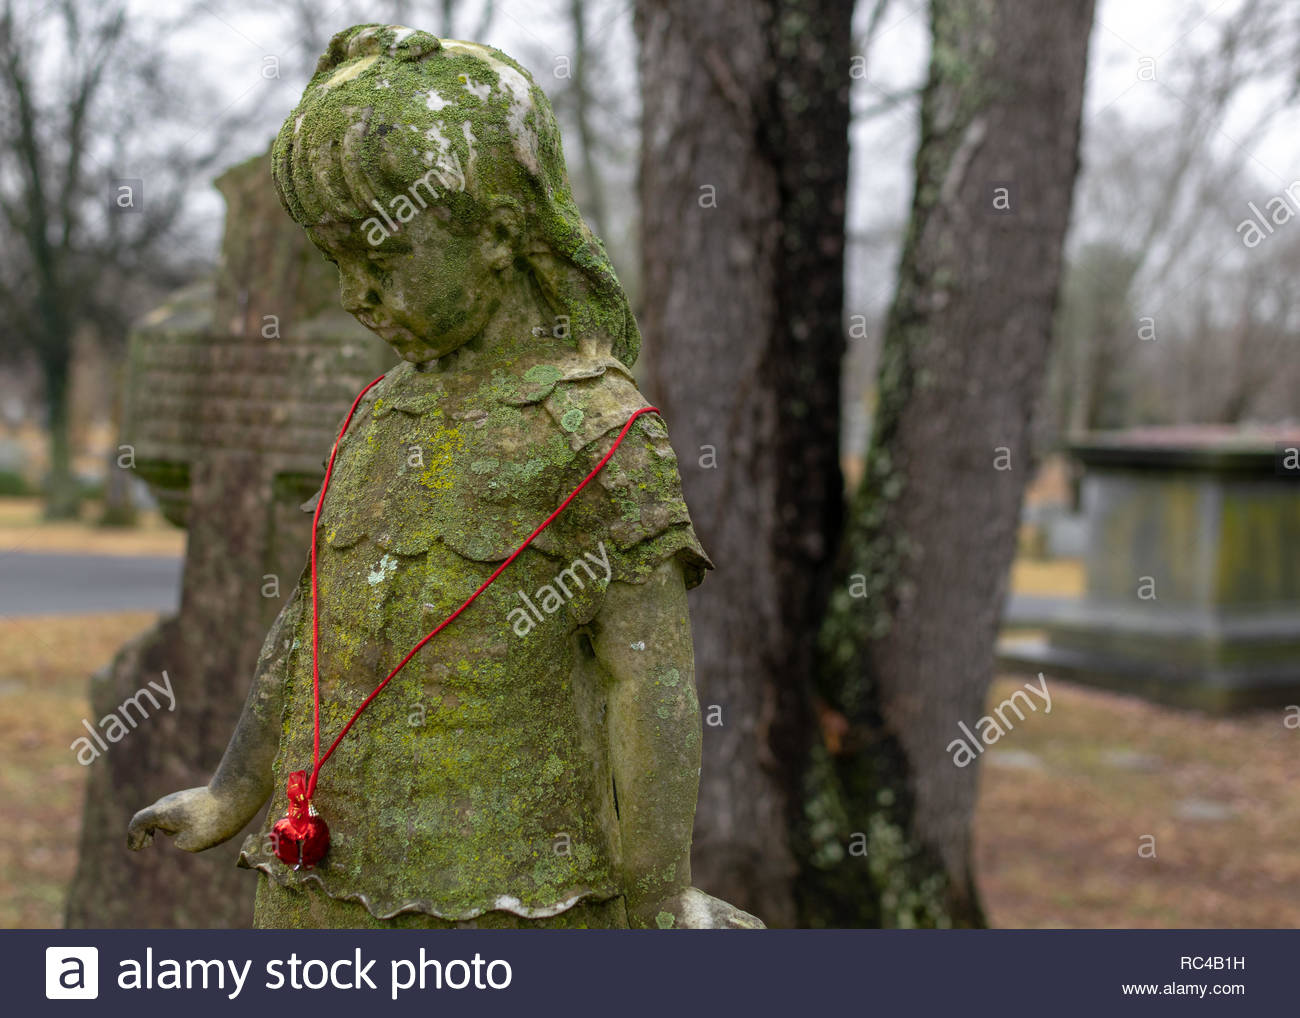 Moss covered statue of a girl wearing a Christmas bell necklace, on a grave in Greenwood Cemetery, Clarksville, Tennessee - Stock Image